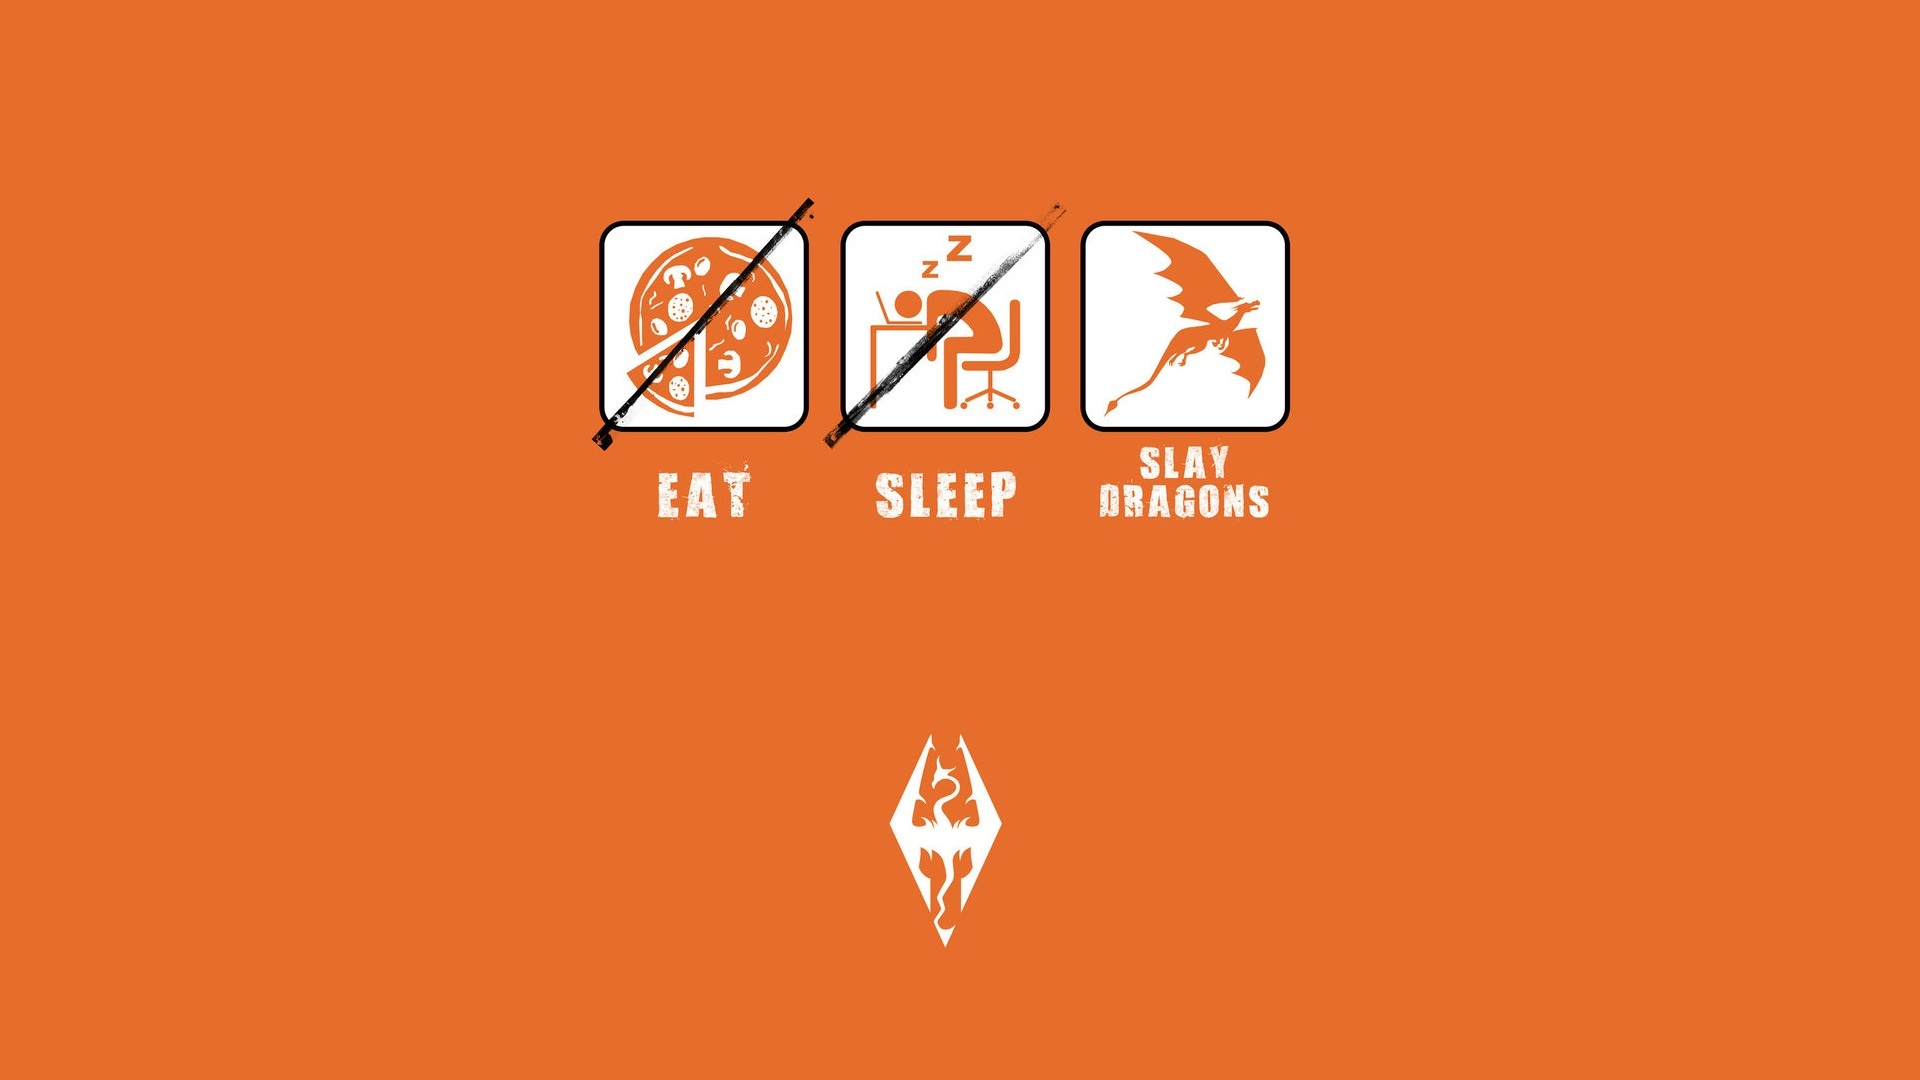 Wallpaper The Elder Scrolls V: Skyrim slay dragons